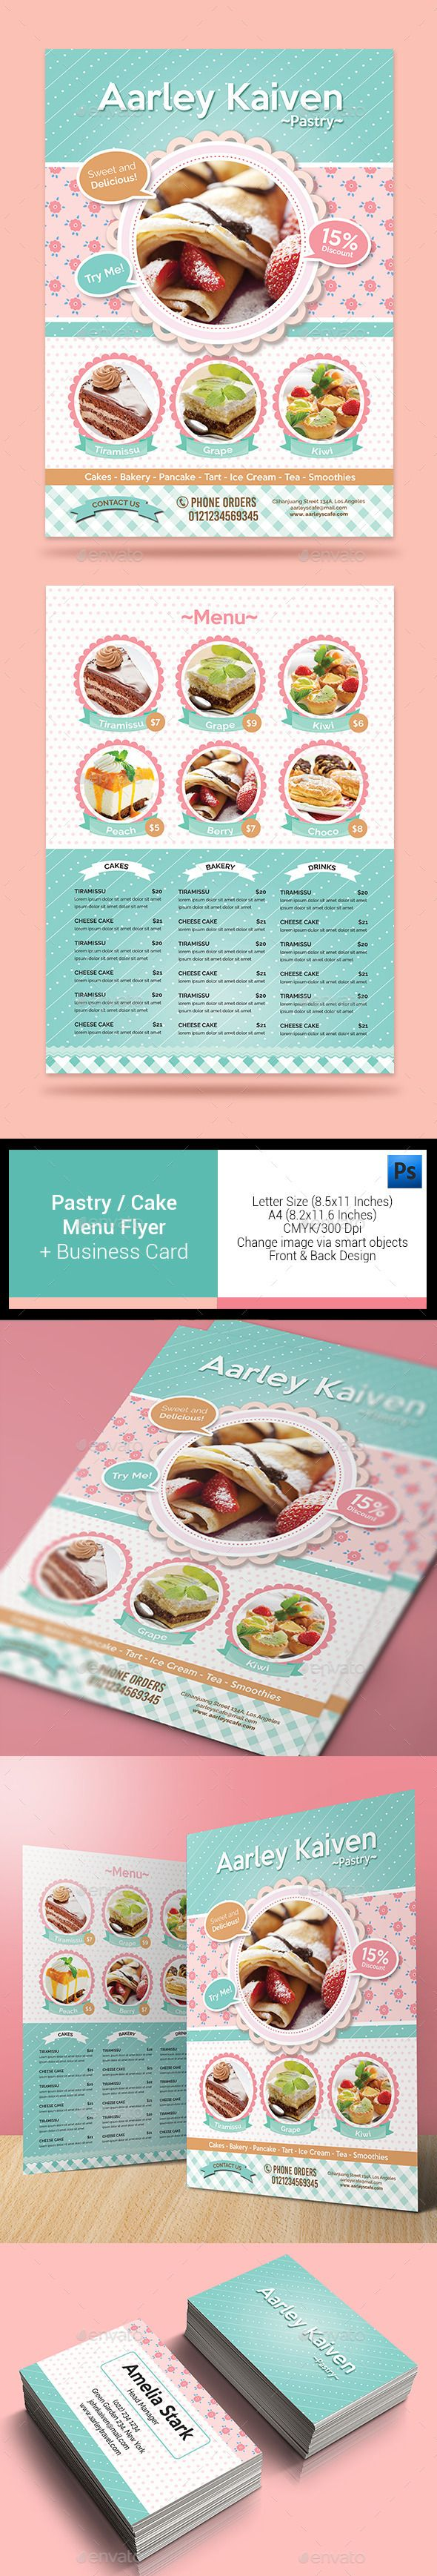 Pastry / Cake Flyer + Business Card Template #design Download: http://graphicriver.net/item/pastry-cake-flyer-business-card/13012931?ref=ksioks